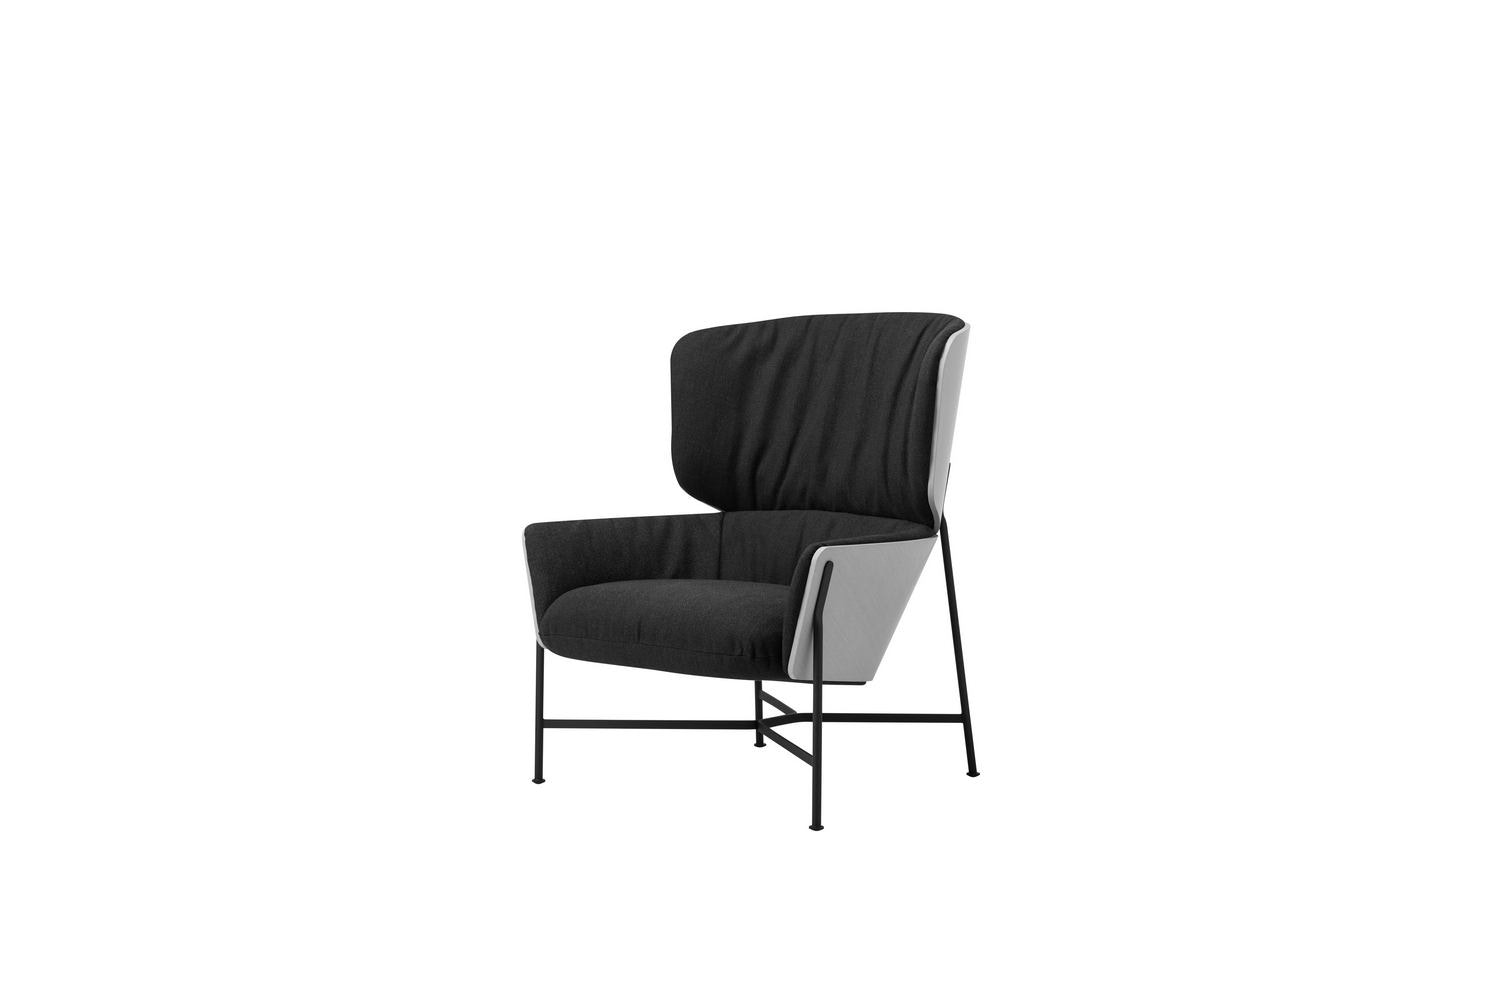 Caristo High Back Armchair by Tim Rundle for SP01